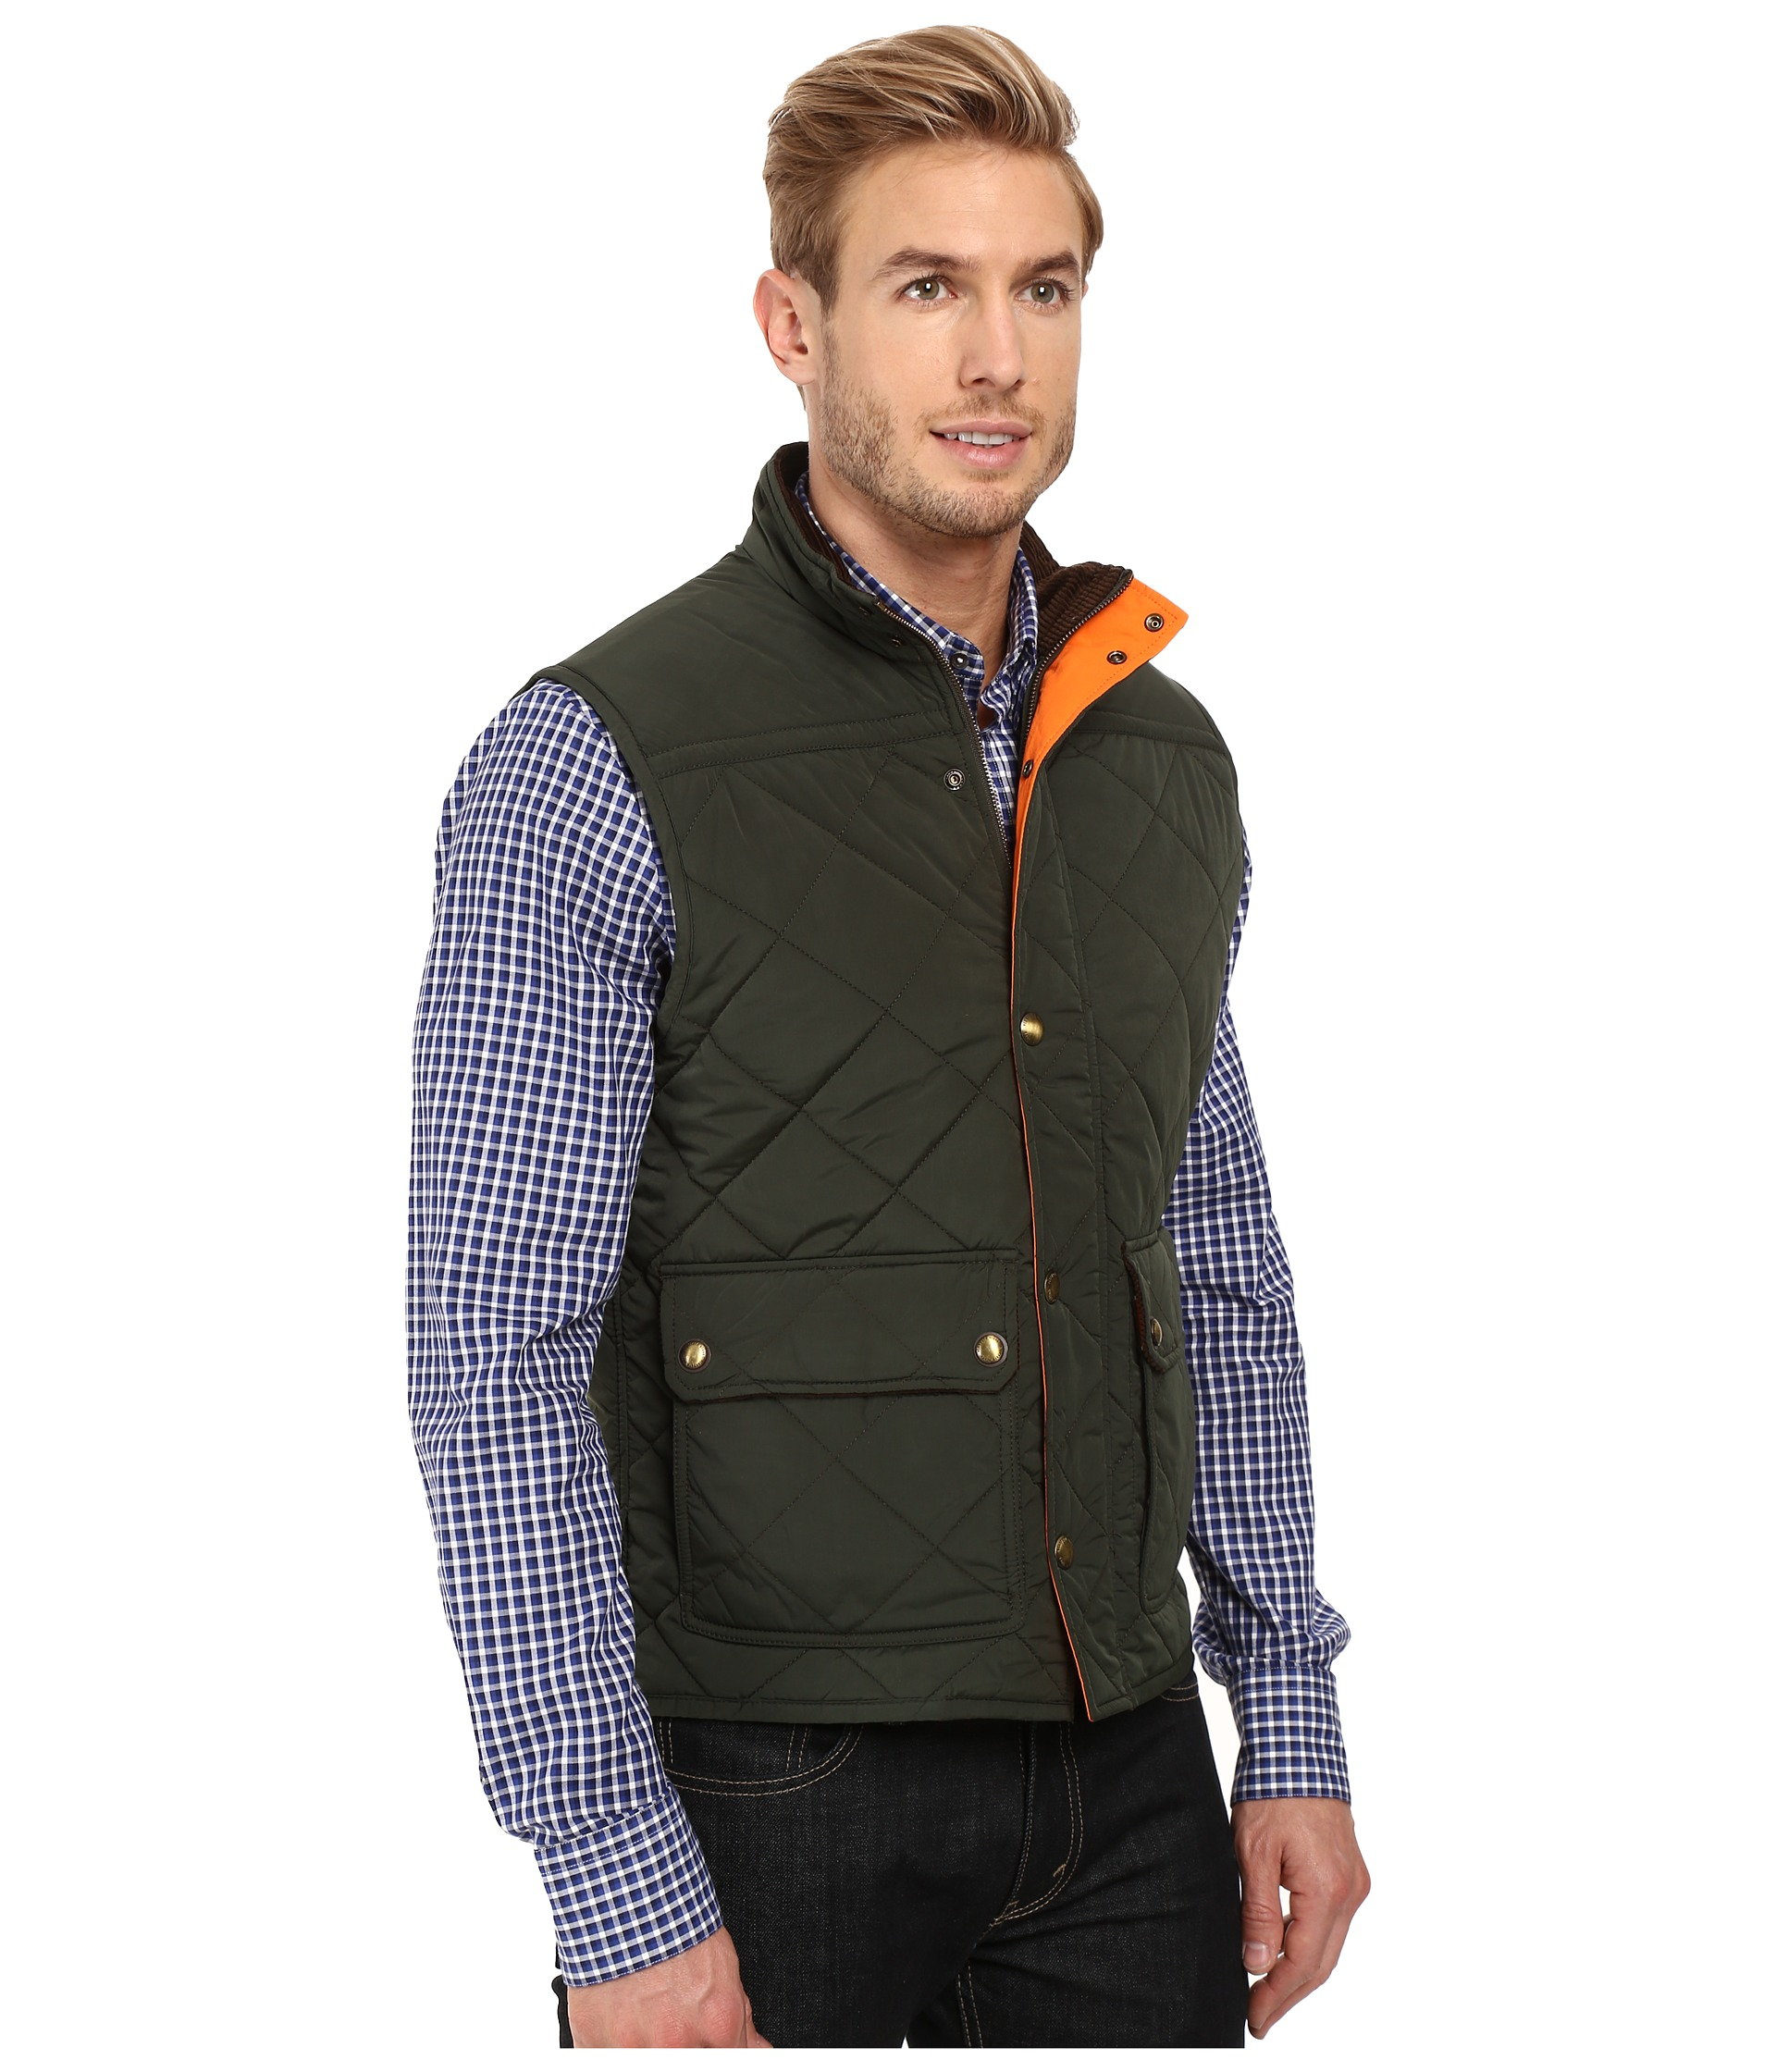 Vineyard Vines Quilted Vest Charleston Green Zappos Com Free Shipping Both Ways